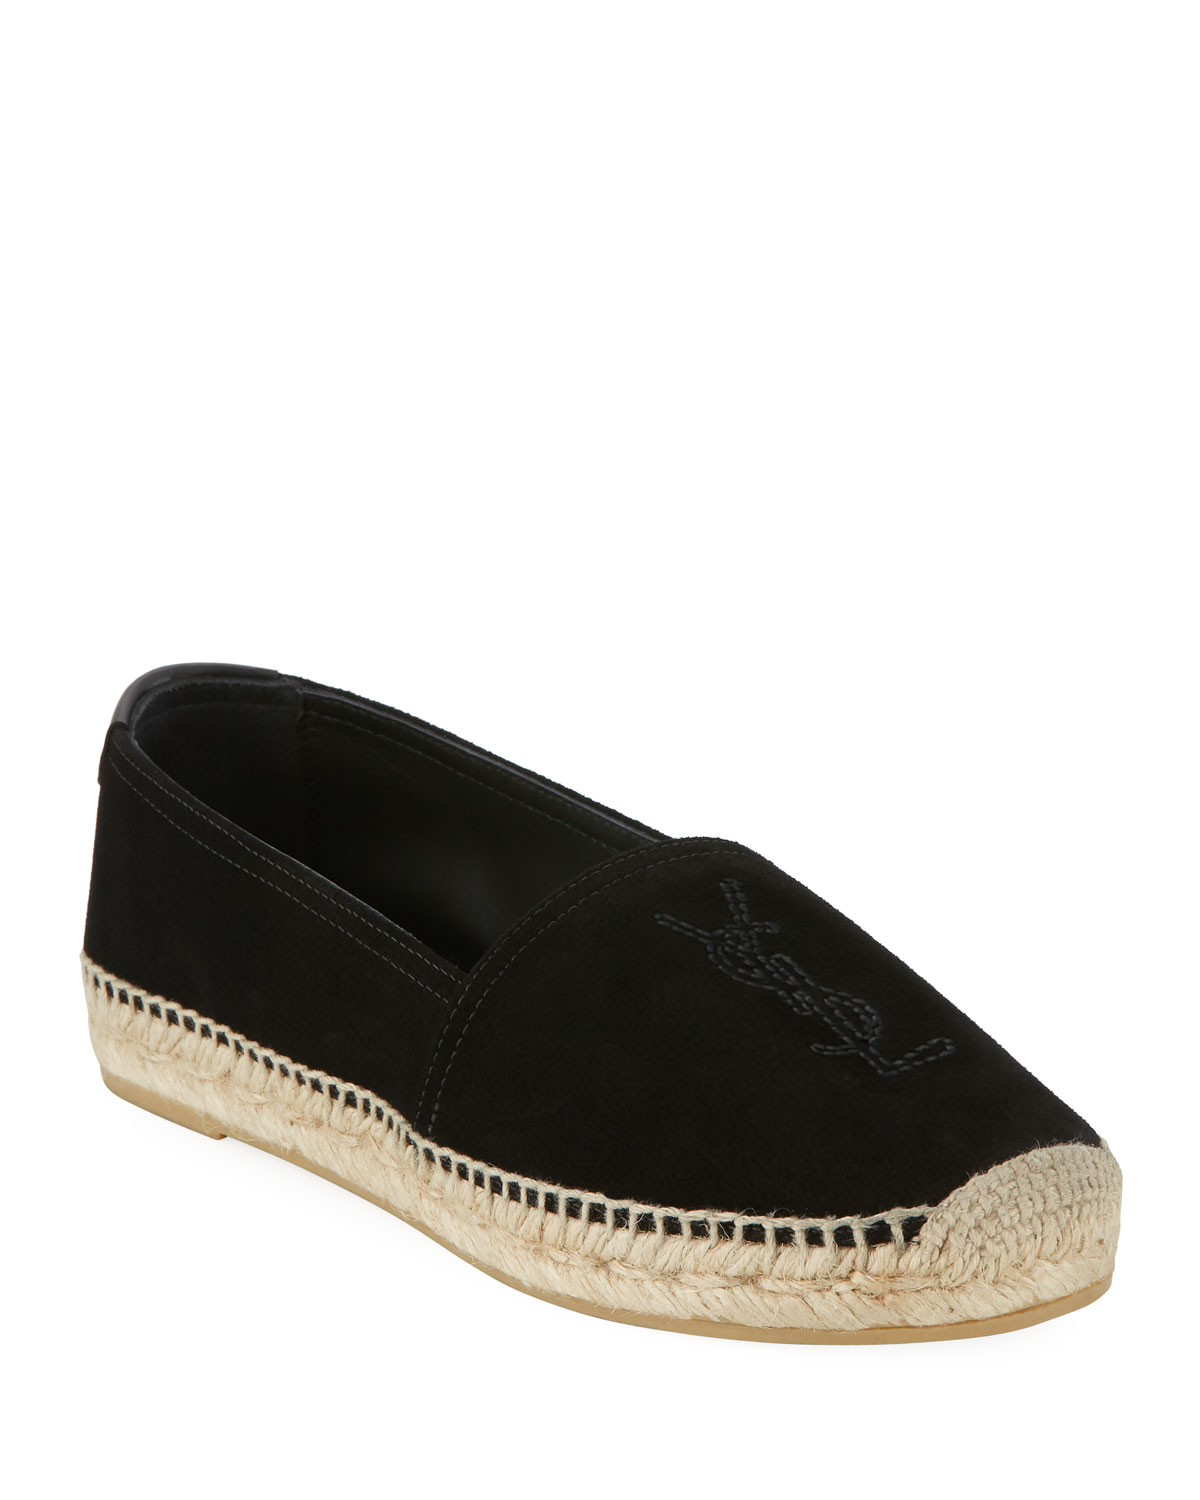 1006ef77606 Saint Laurent Monogram YSL Soho Suede Slip-On Espadrille Flat ...